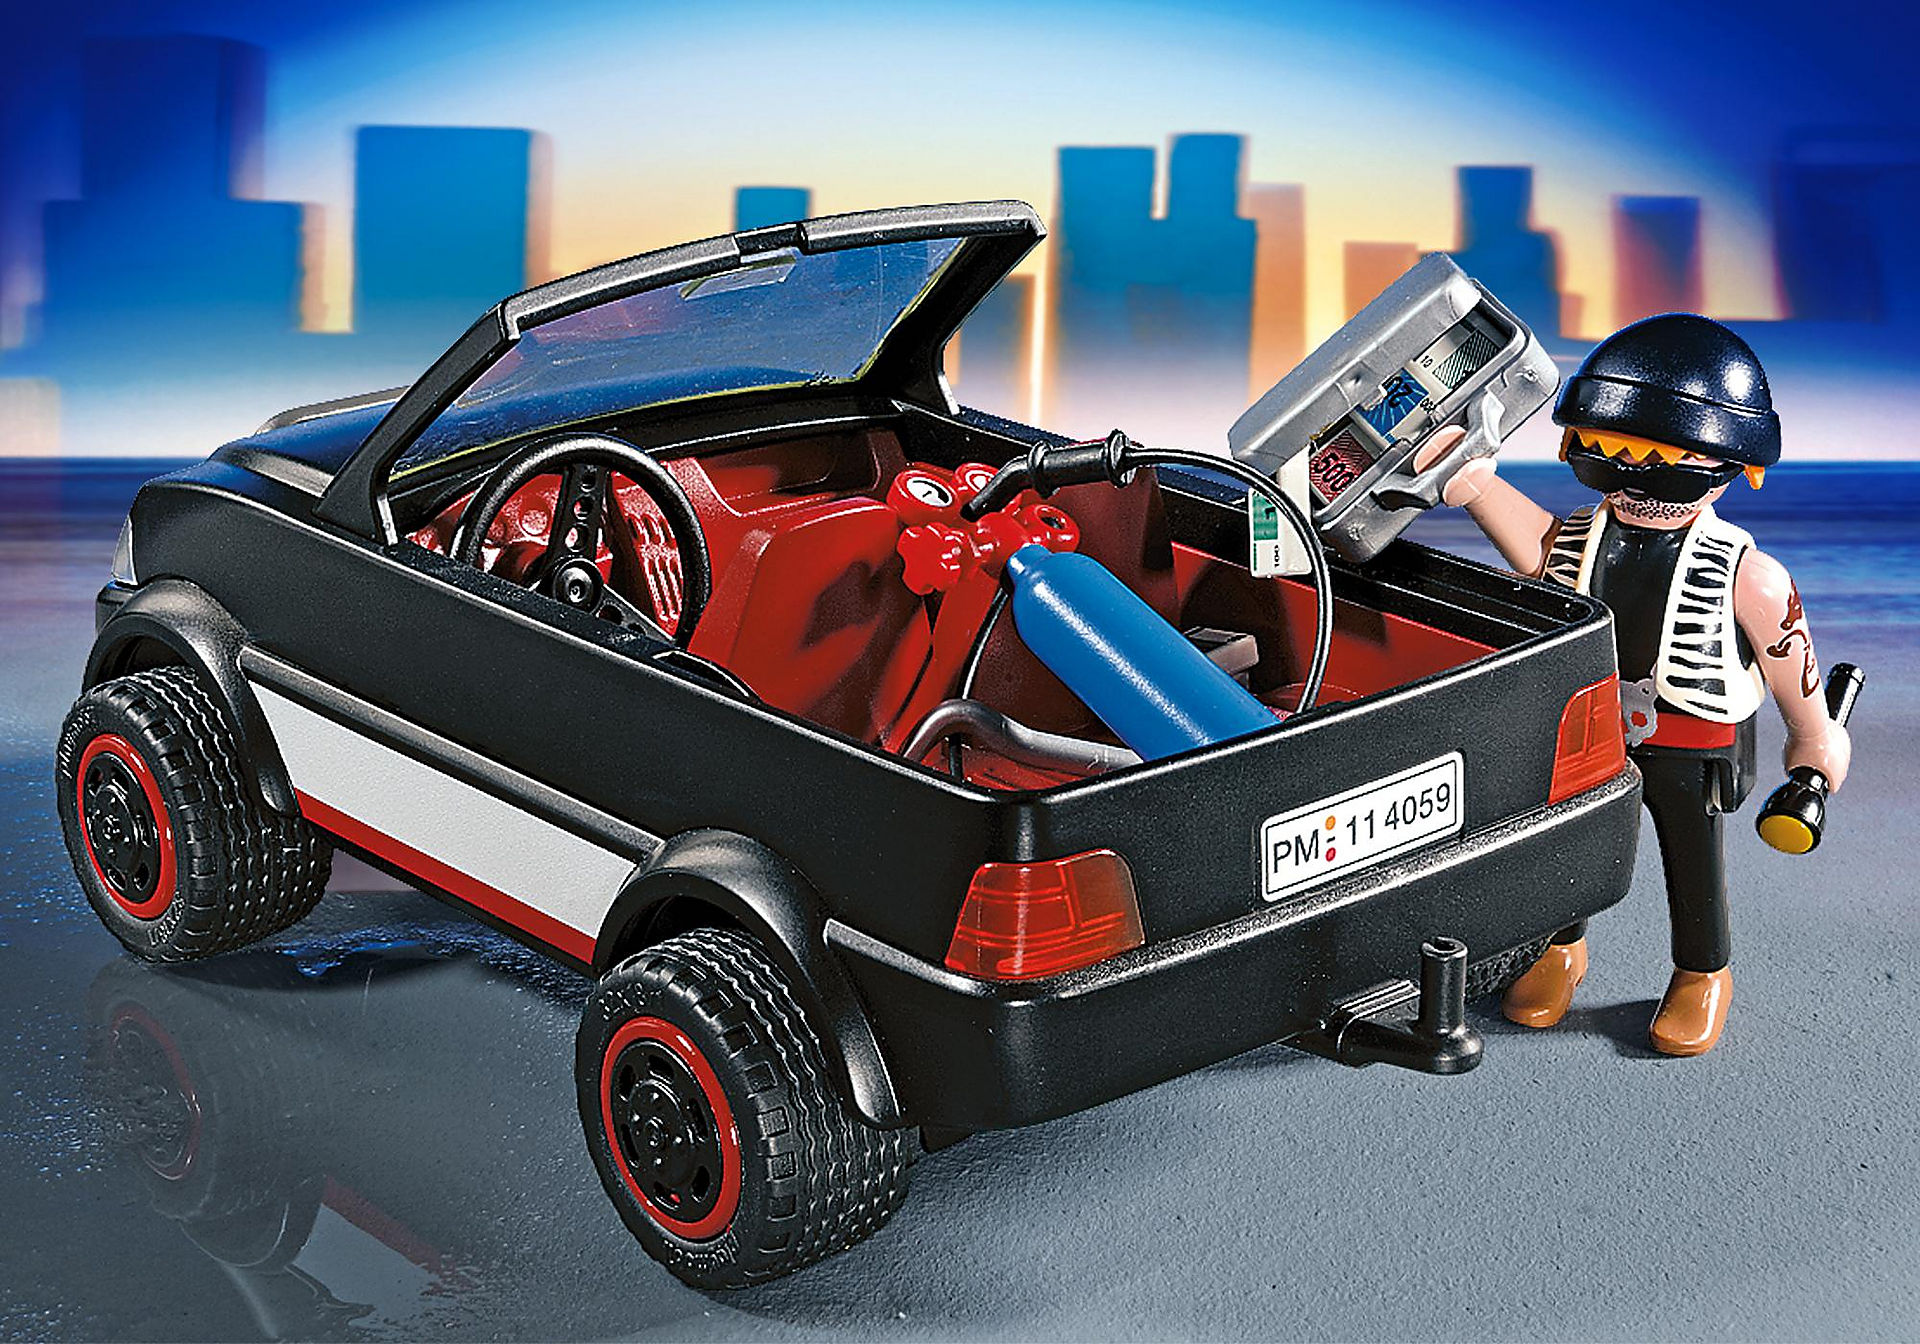 http://media.playmobil.com/i/playmobil/4059_product_extra1/Thief with Safe and Getaway Car